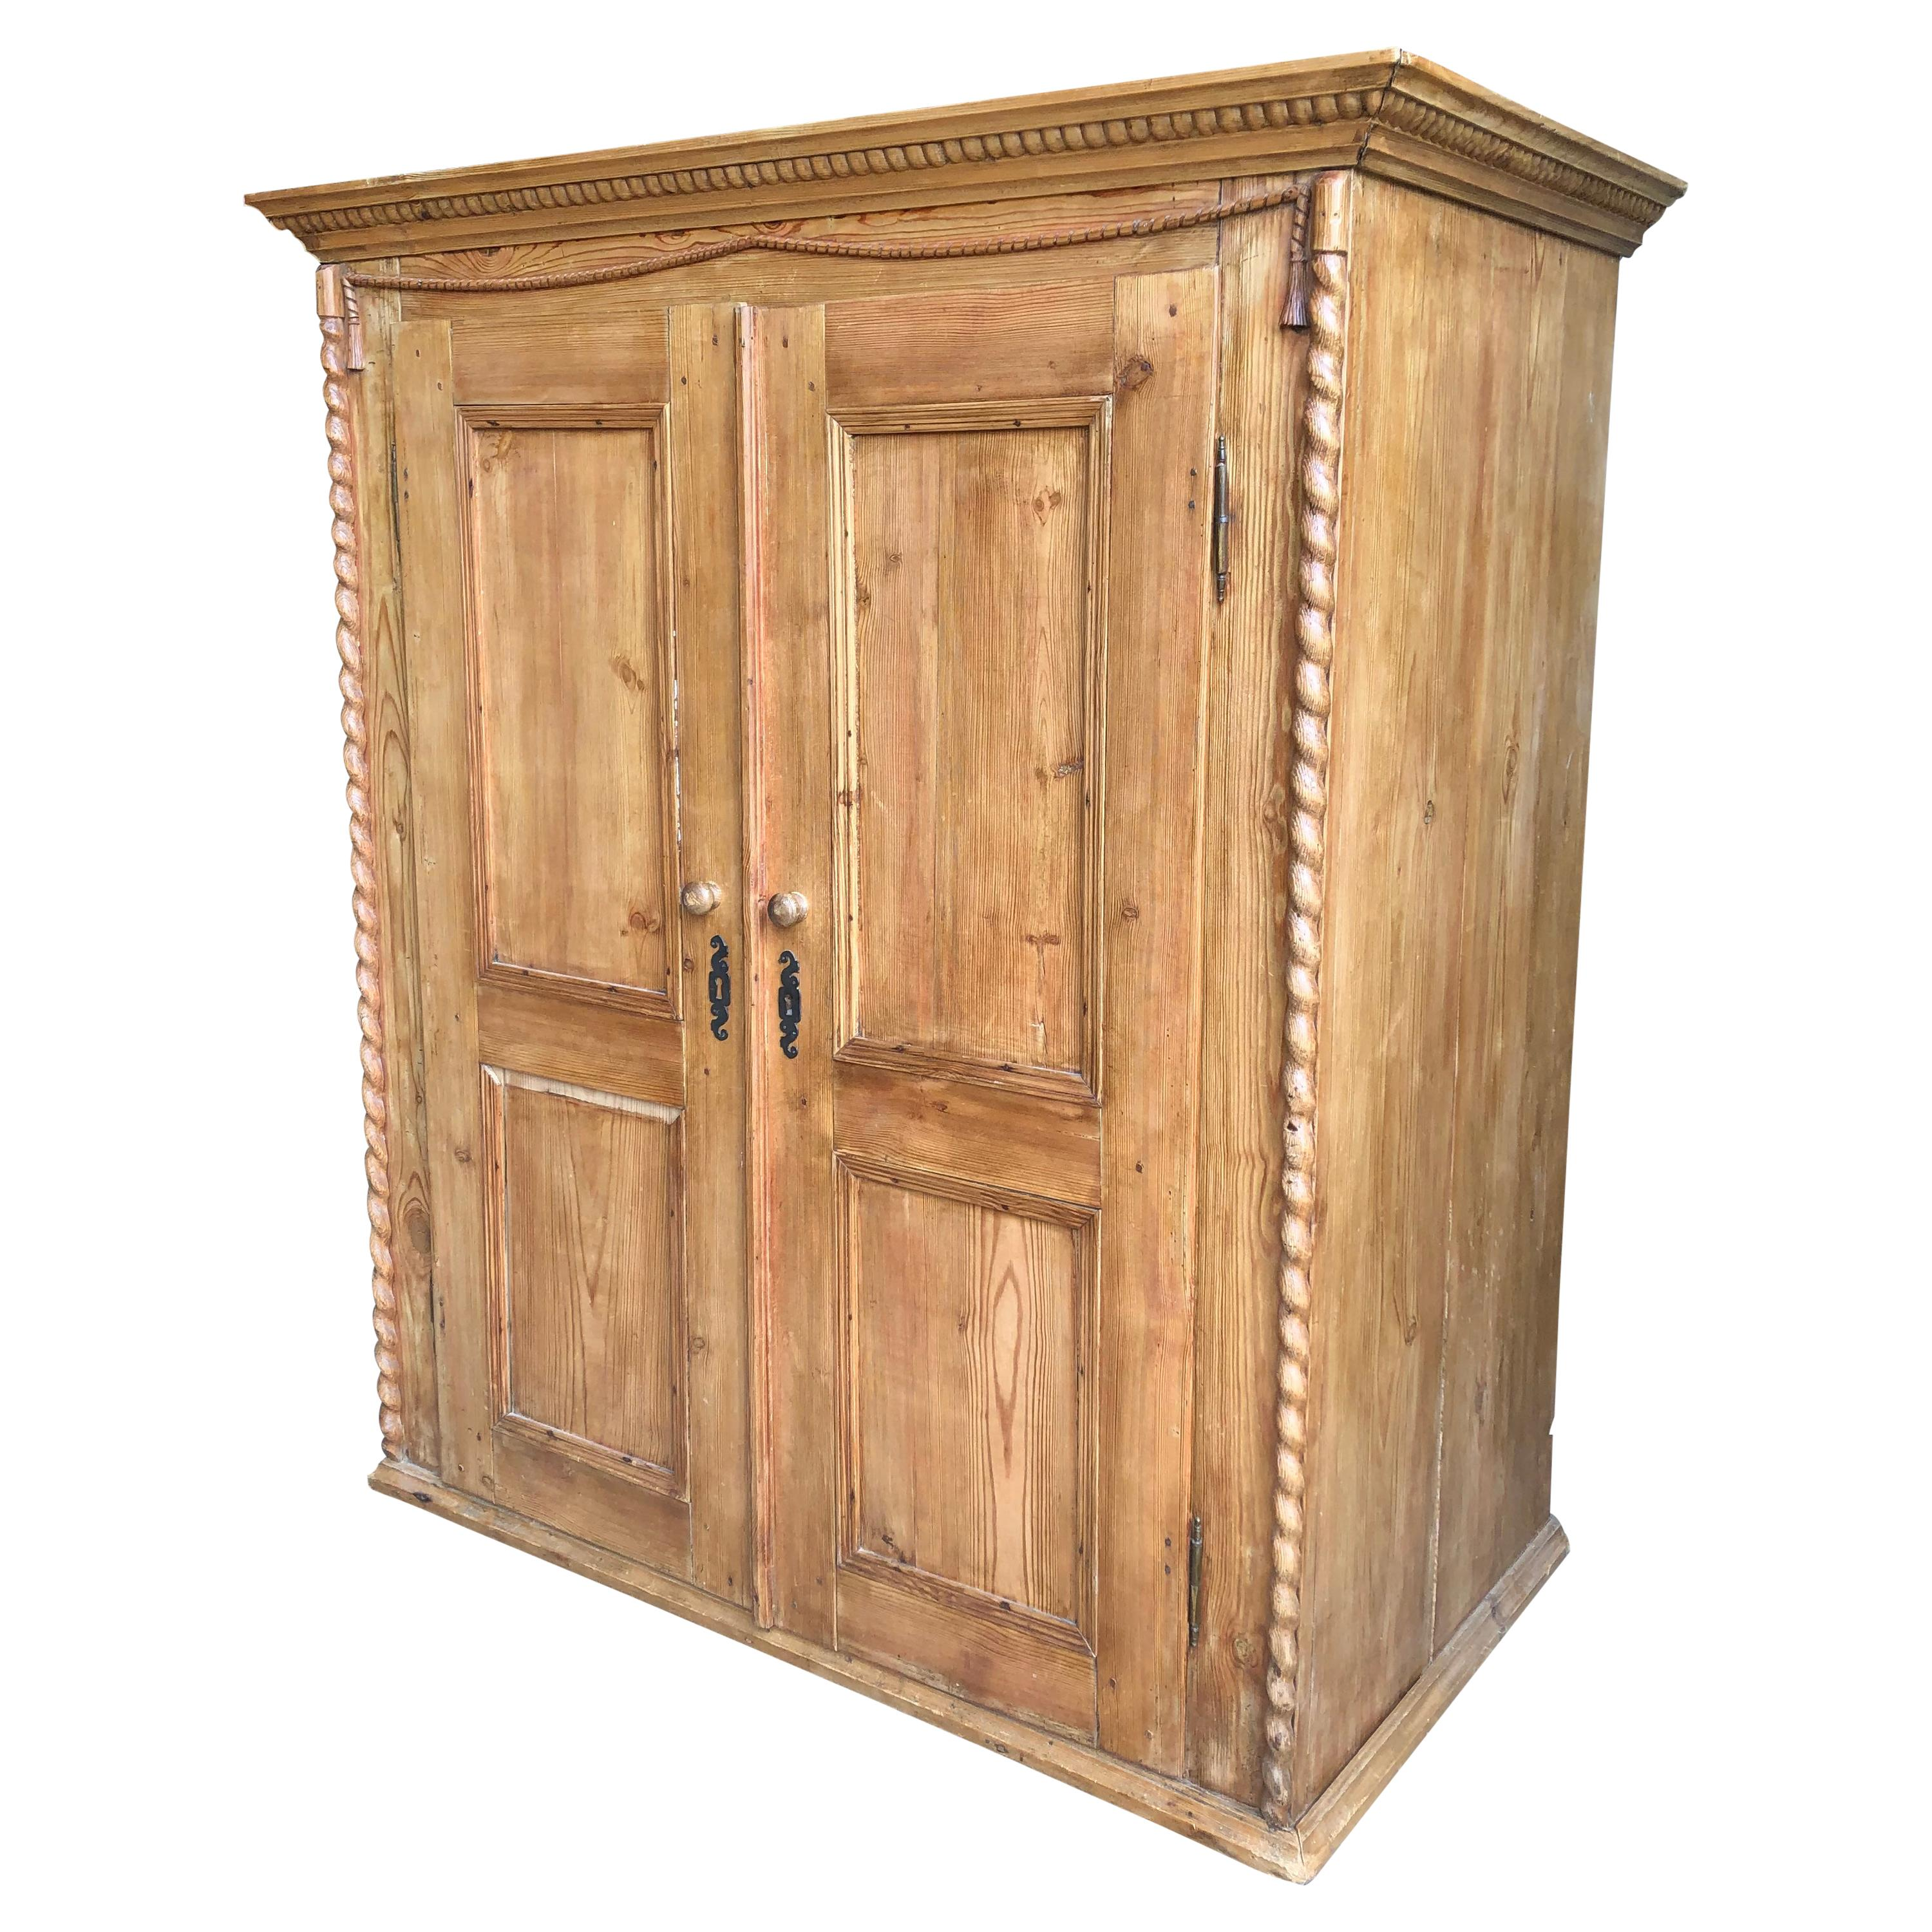 Small Pine Armoire, French, 19th C